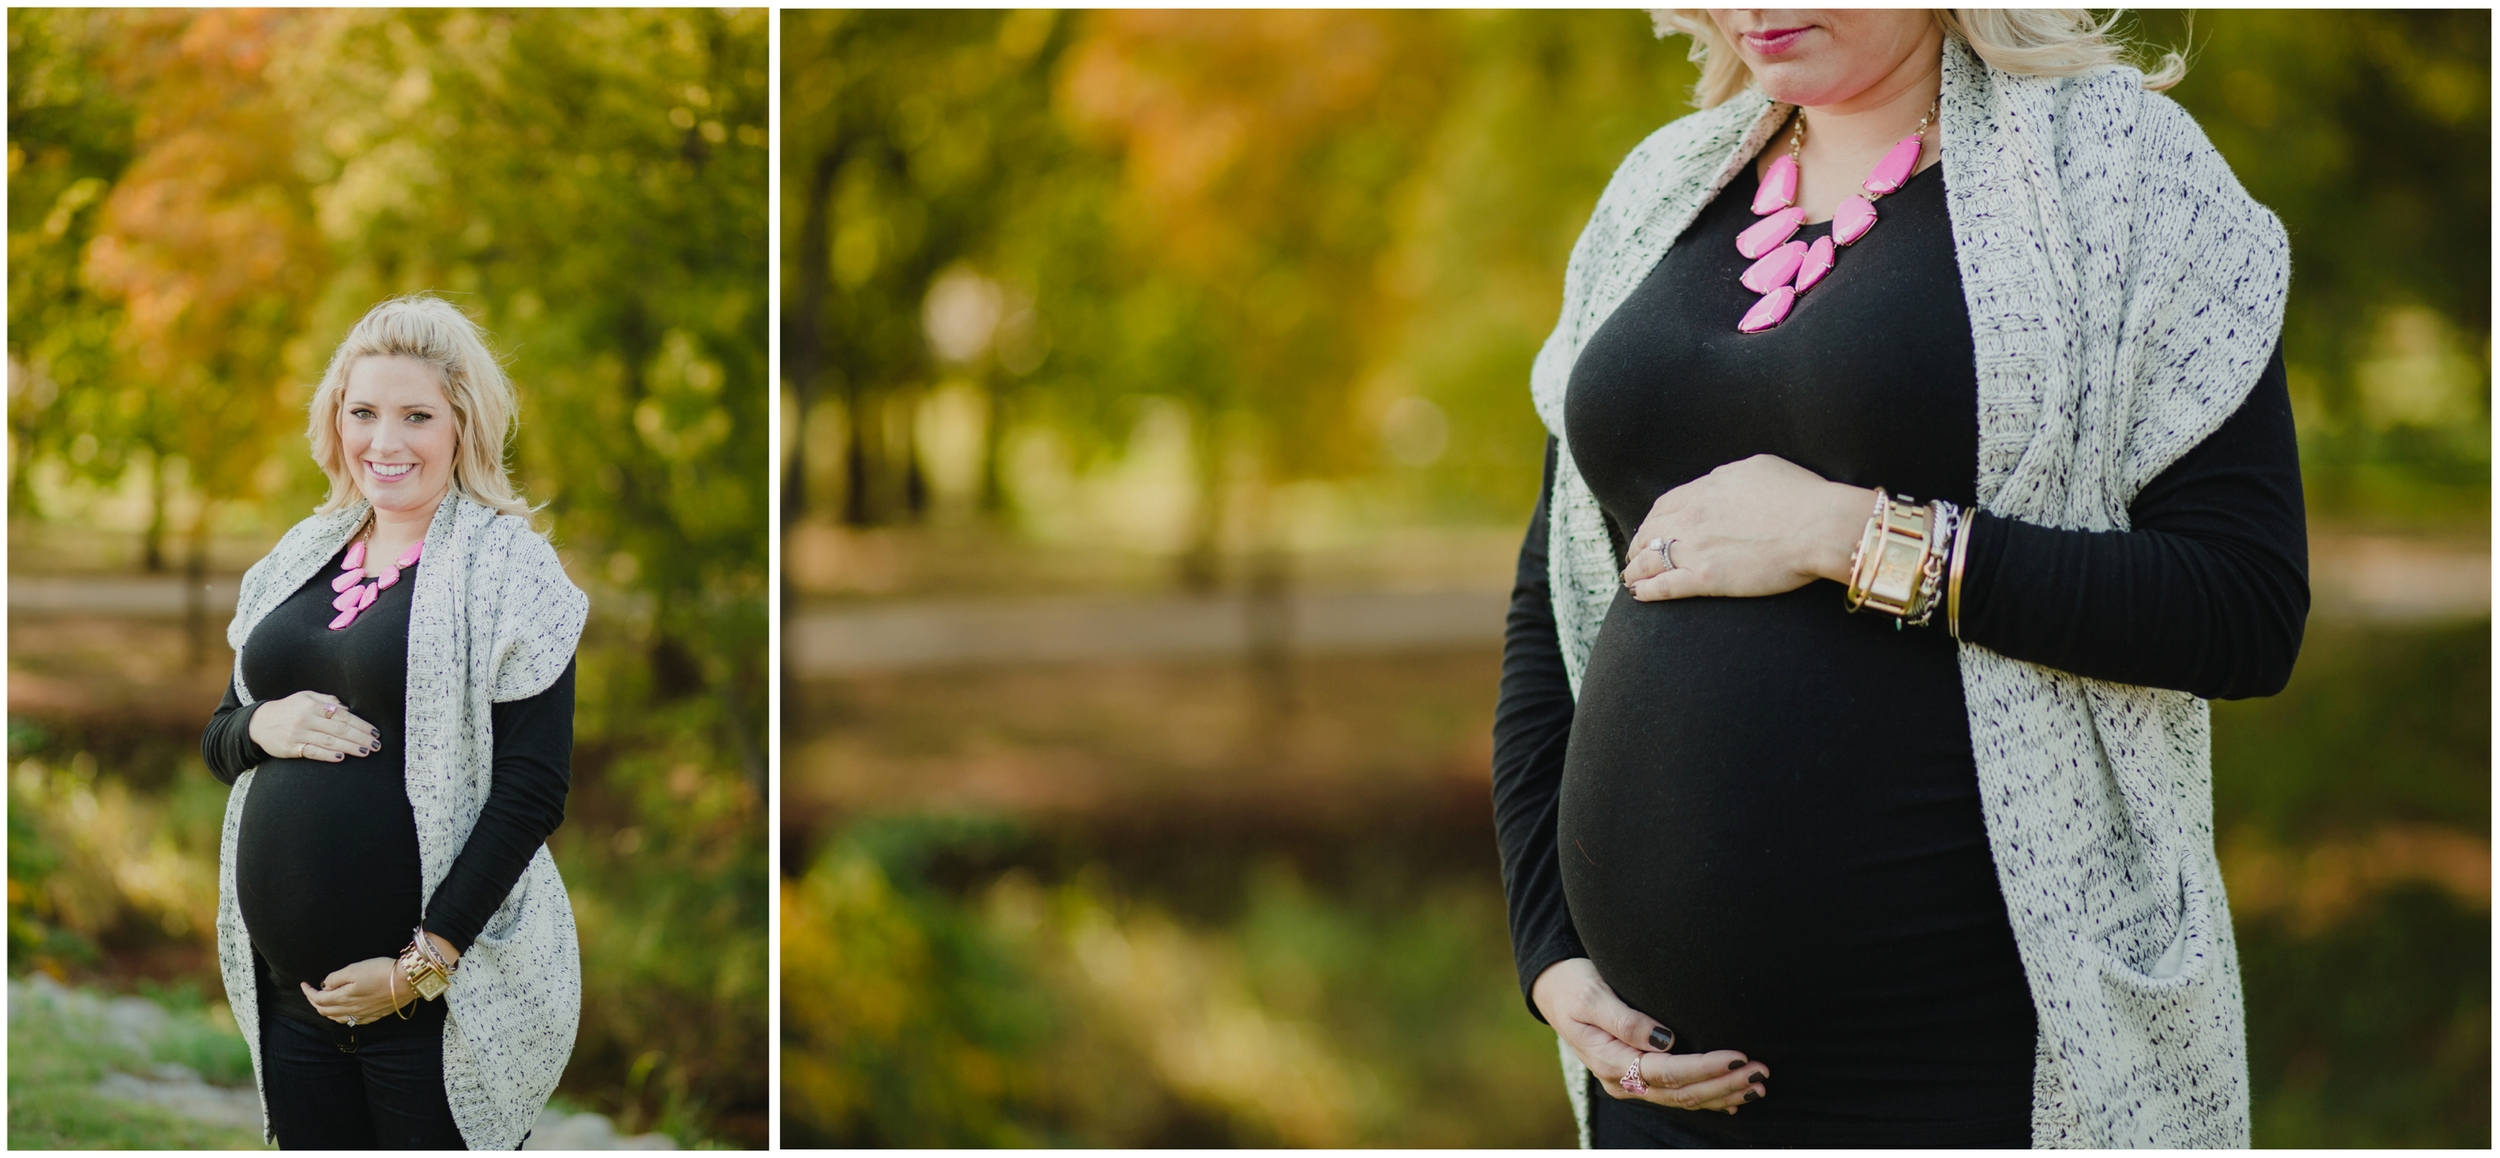 Outdoor-Maternity-Photos-OKC.jpg